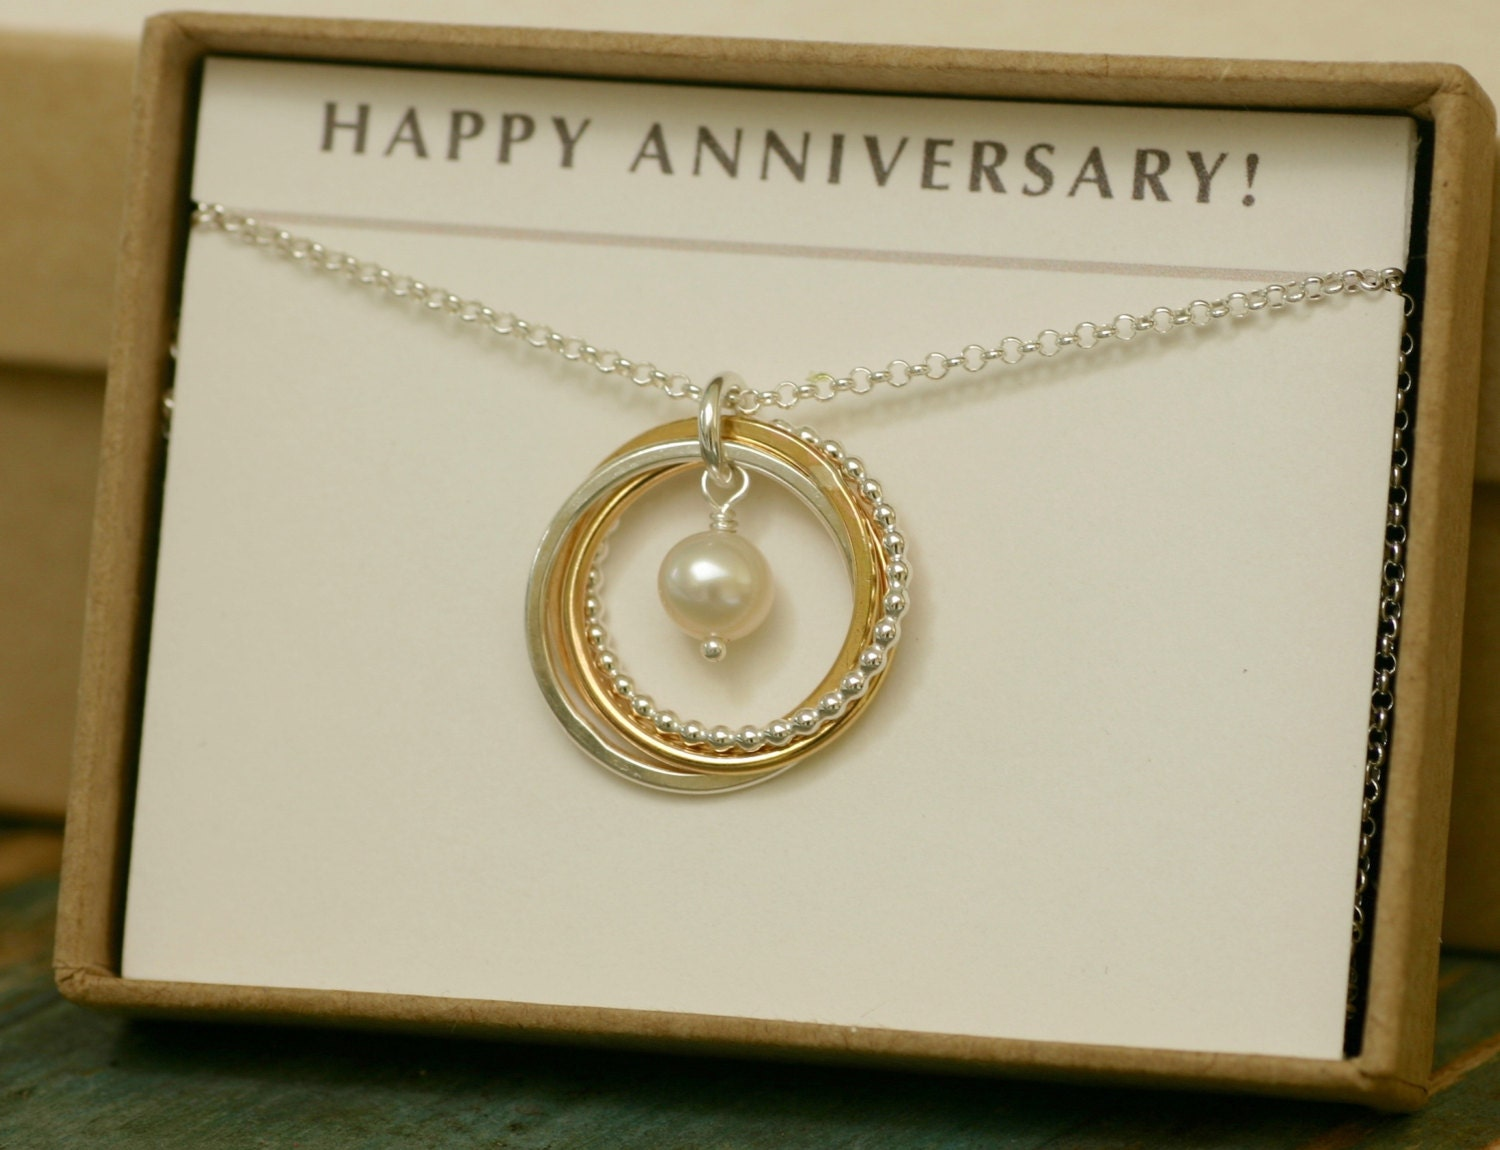 4 Wedding Anniversary Gift: 4th Anniversary Gift For Wife Birthday Gift From Bride 4